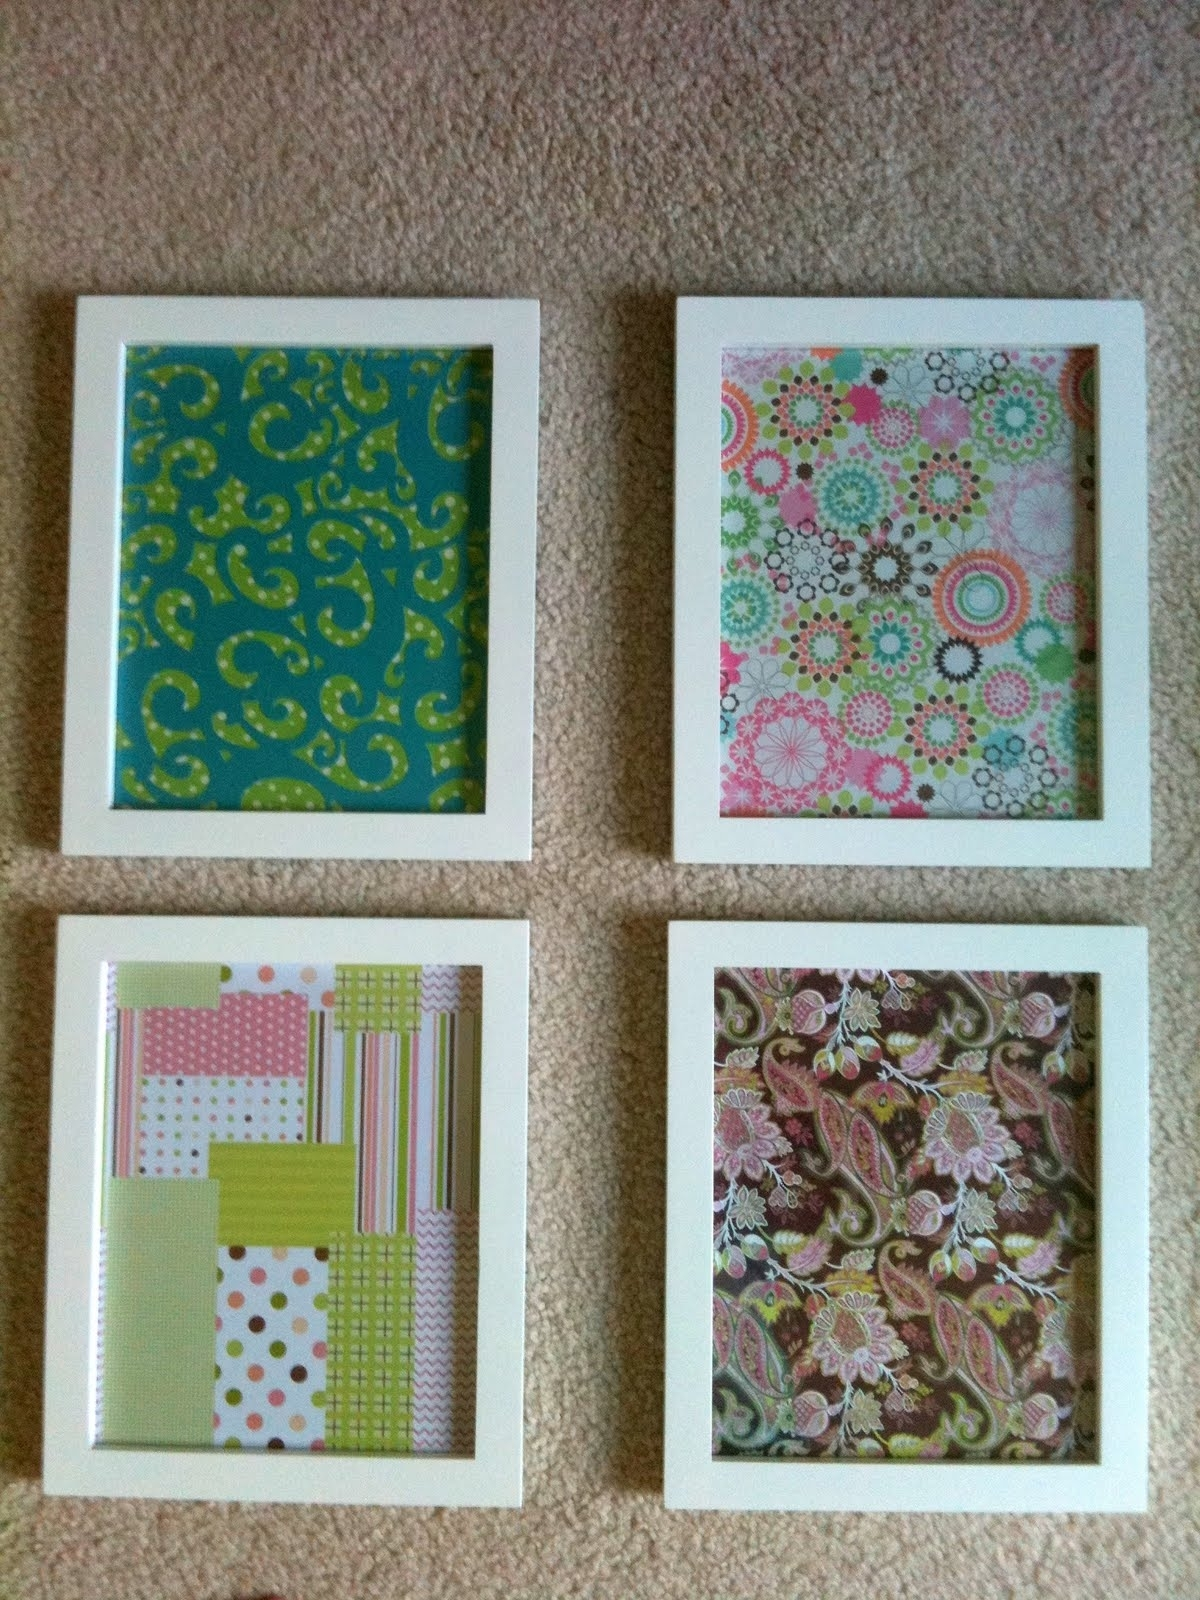 Photo Gallery of Fabric Covered Frames Wall Art (Showing 15 of 15 ...